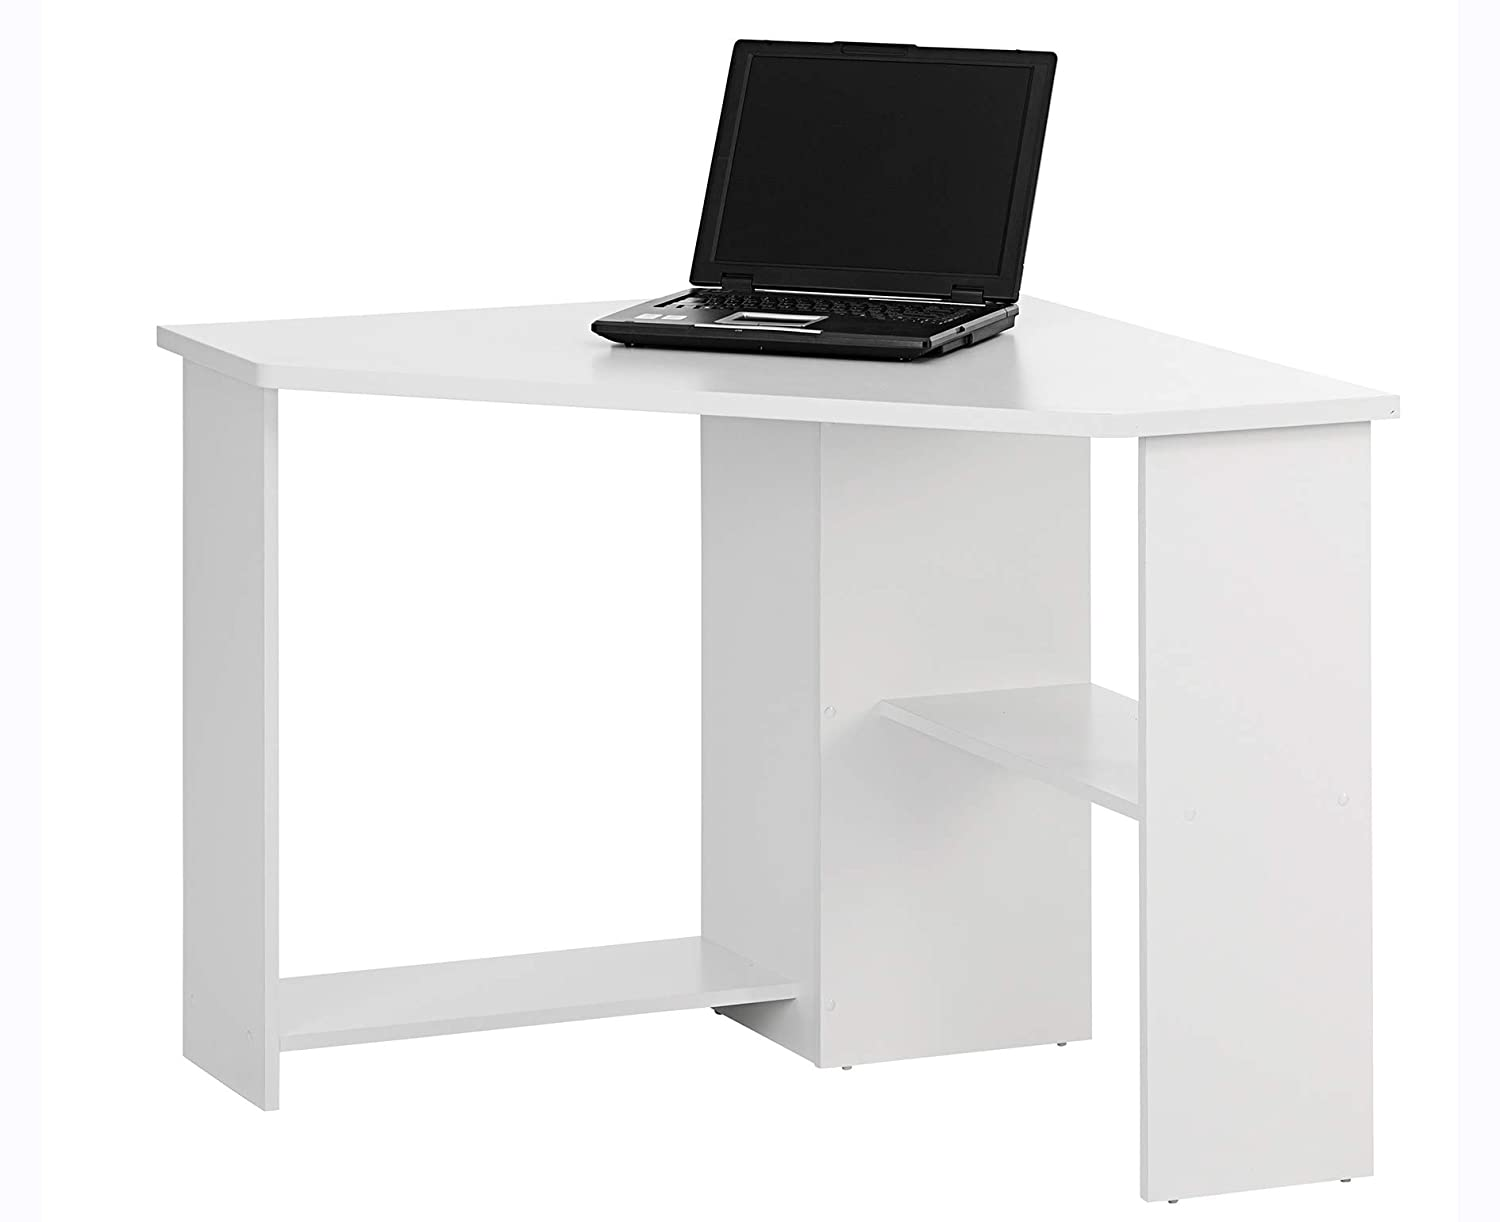 Bray Corner Home Office Desk - Color: White Finish